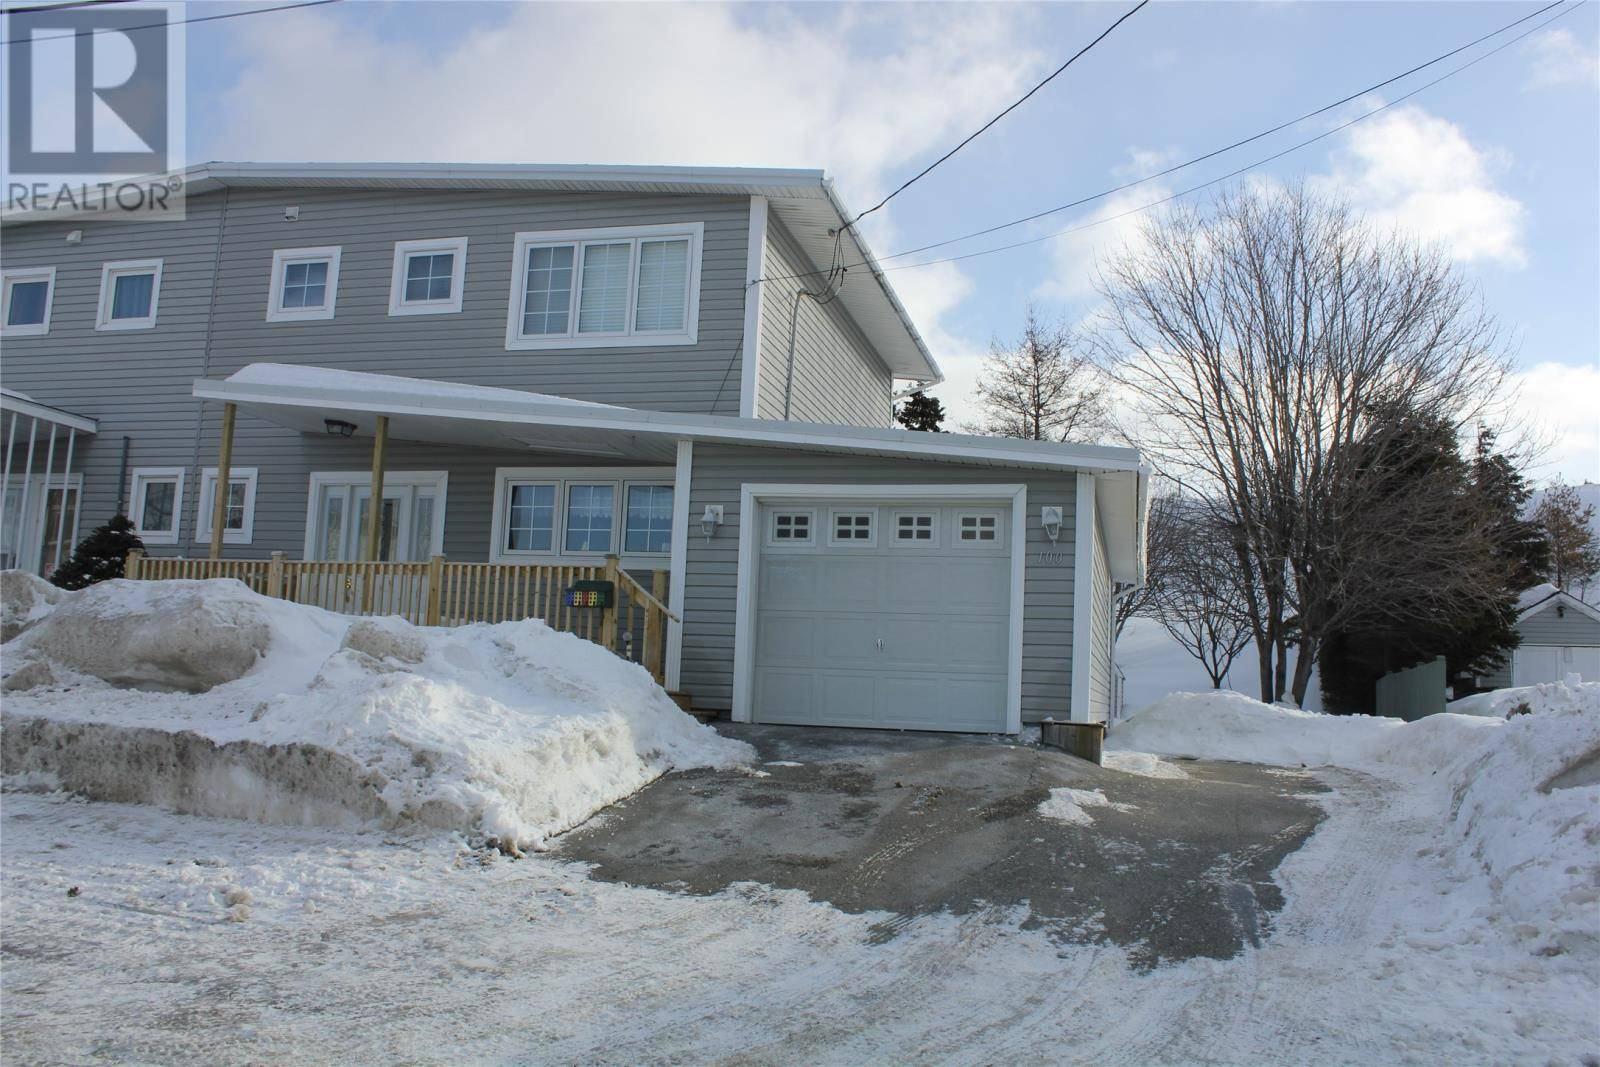 House for sale at 100 New Mexico Dr Stephenville Newfoundland - MLS: 1212341